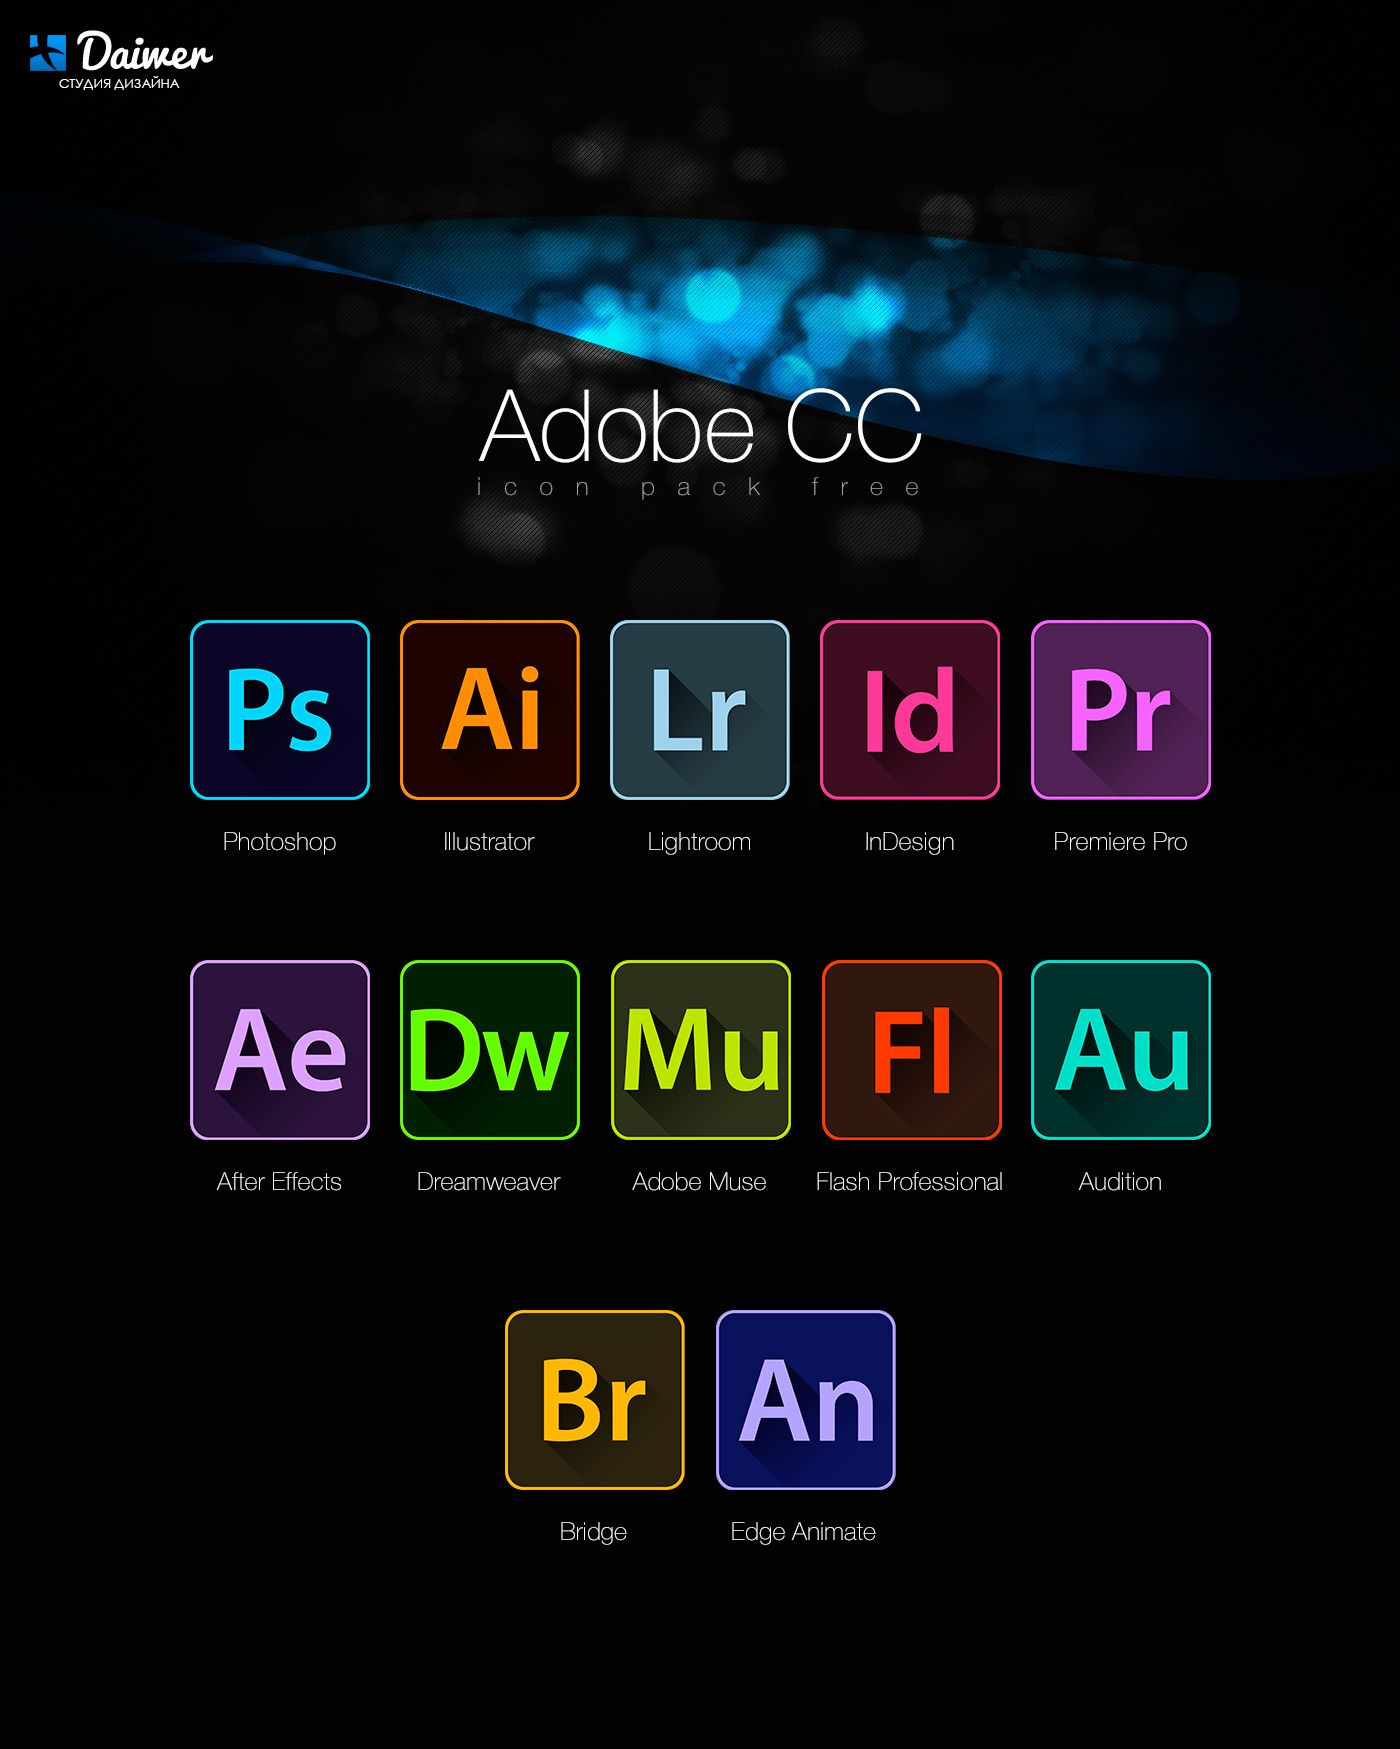 Adobe CC is an incredible suite of software programs that